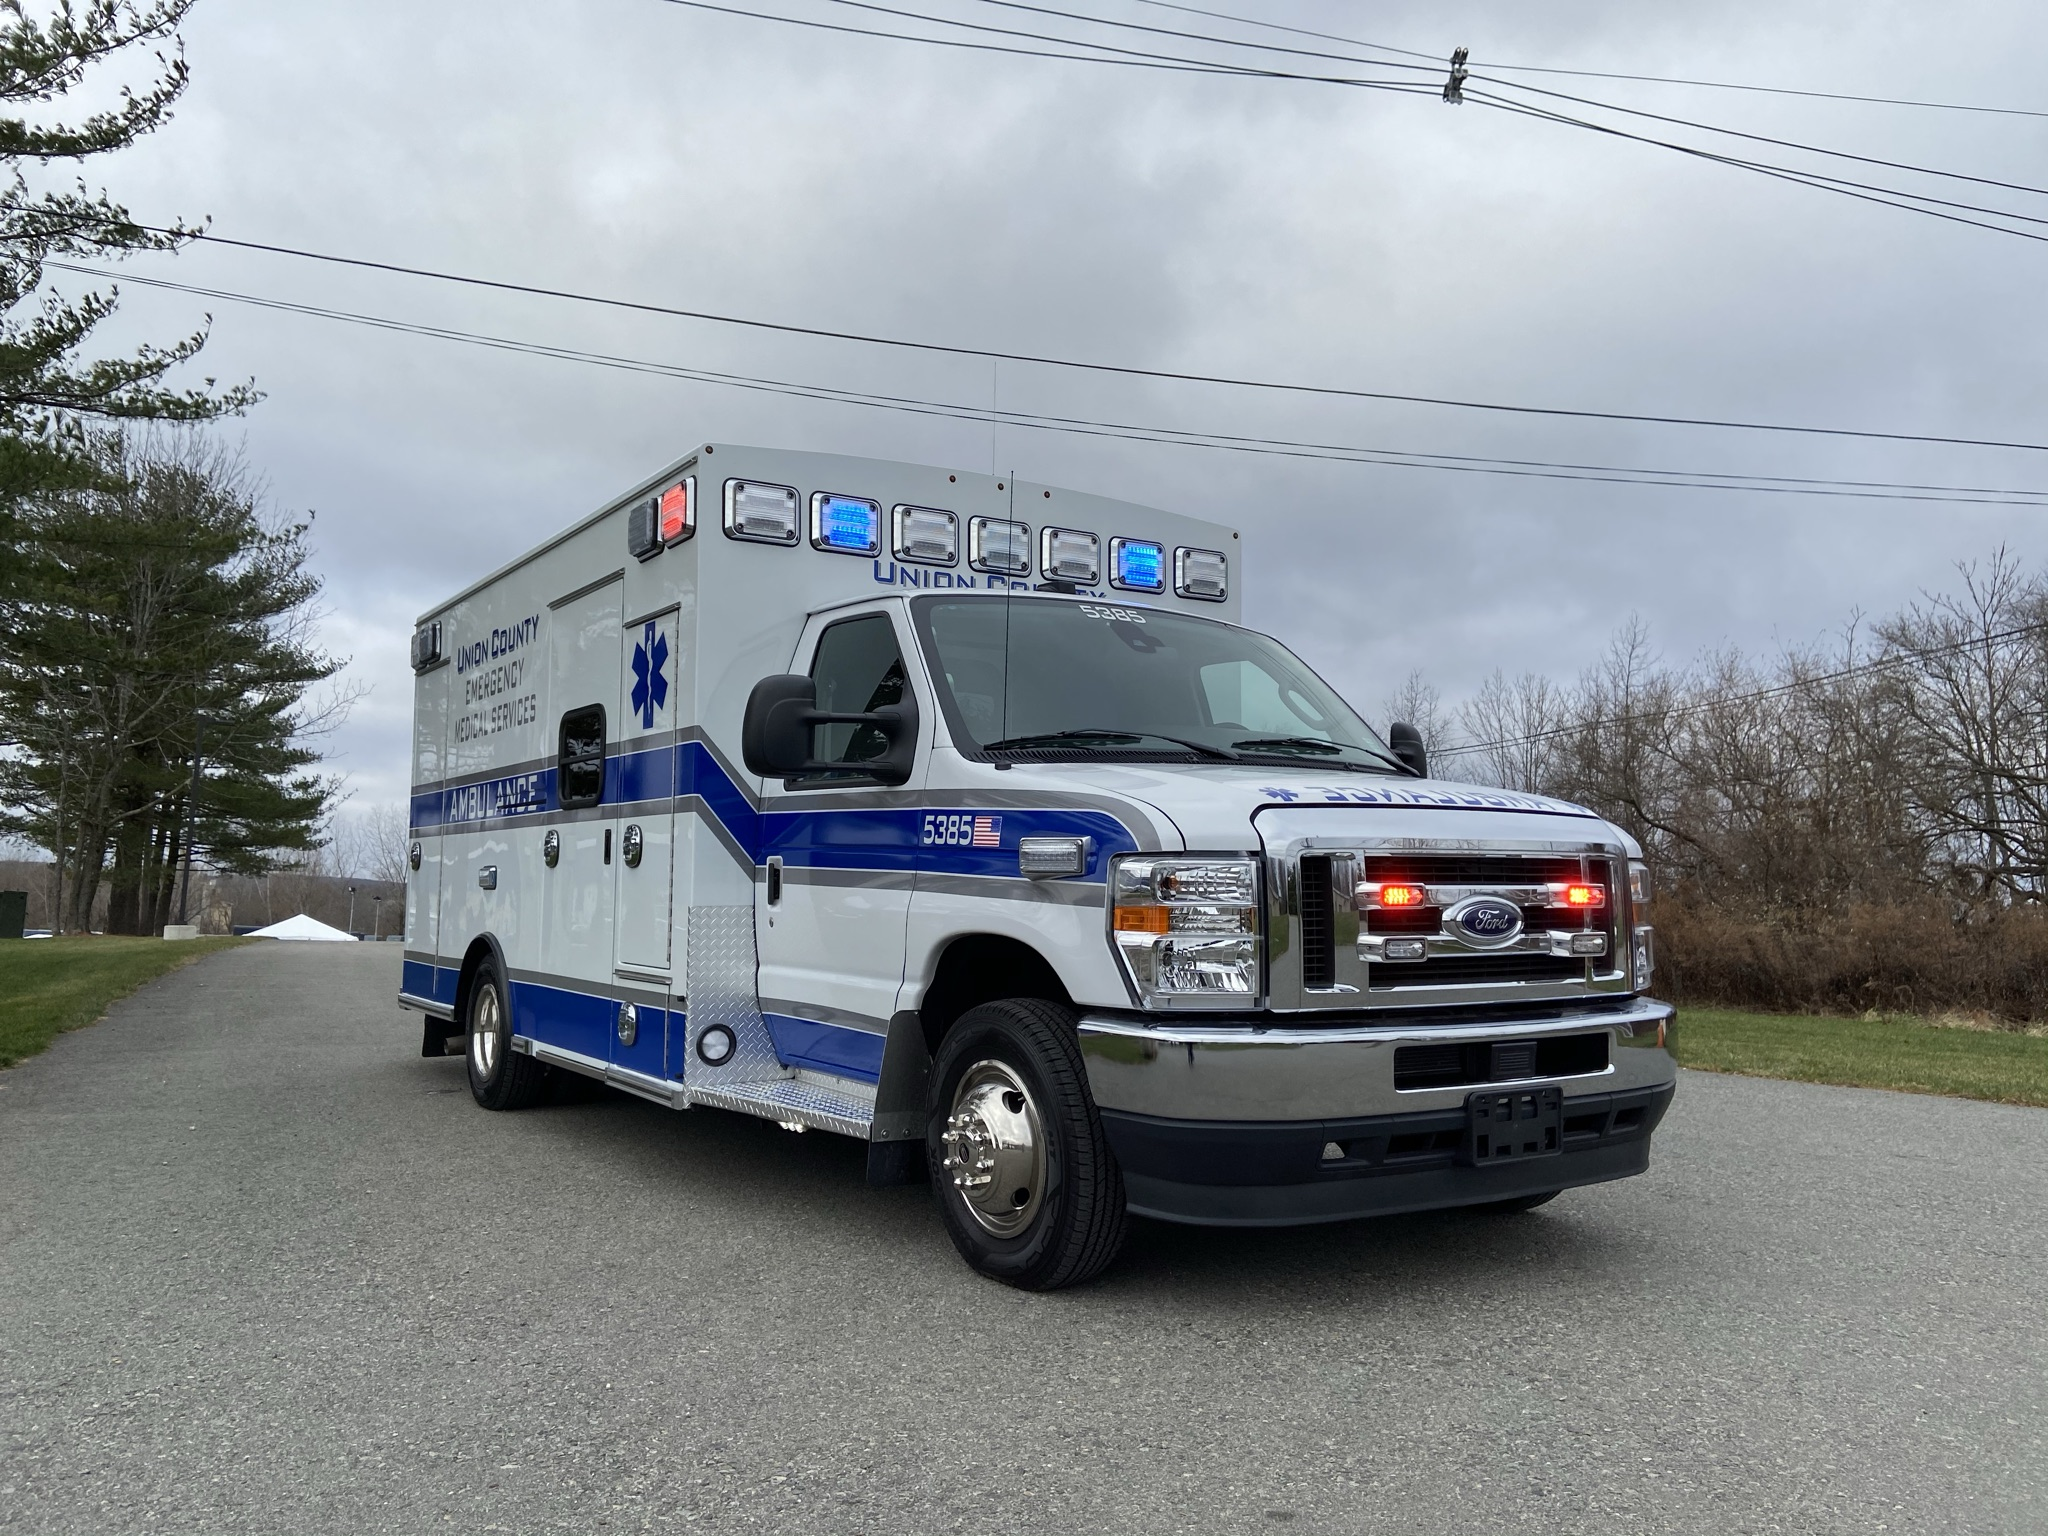 First Priority Emergency Vehicles Union County EMS Braun Ambulance Chief XL Type 3 2020 1